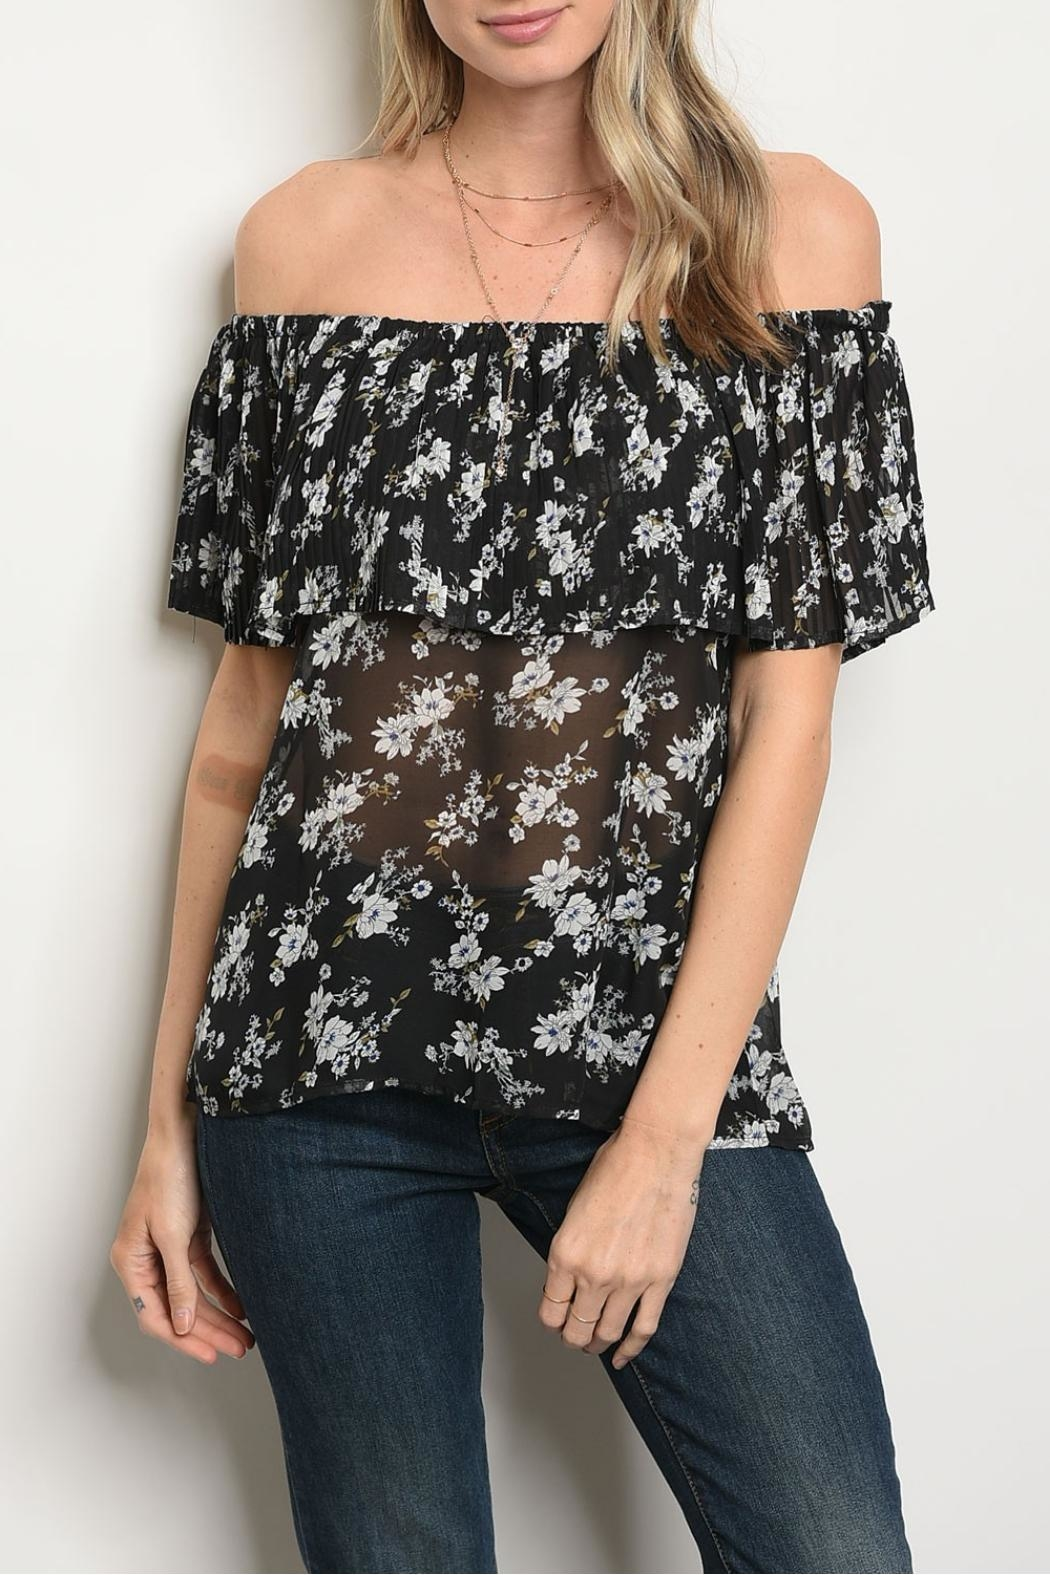 Alythea Black Floral Blouse - Front Cropped Image